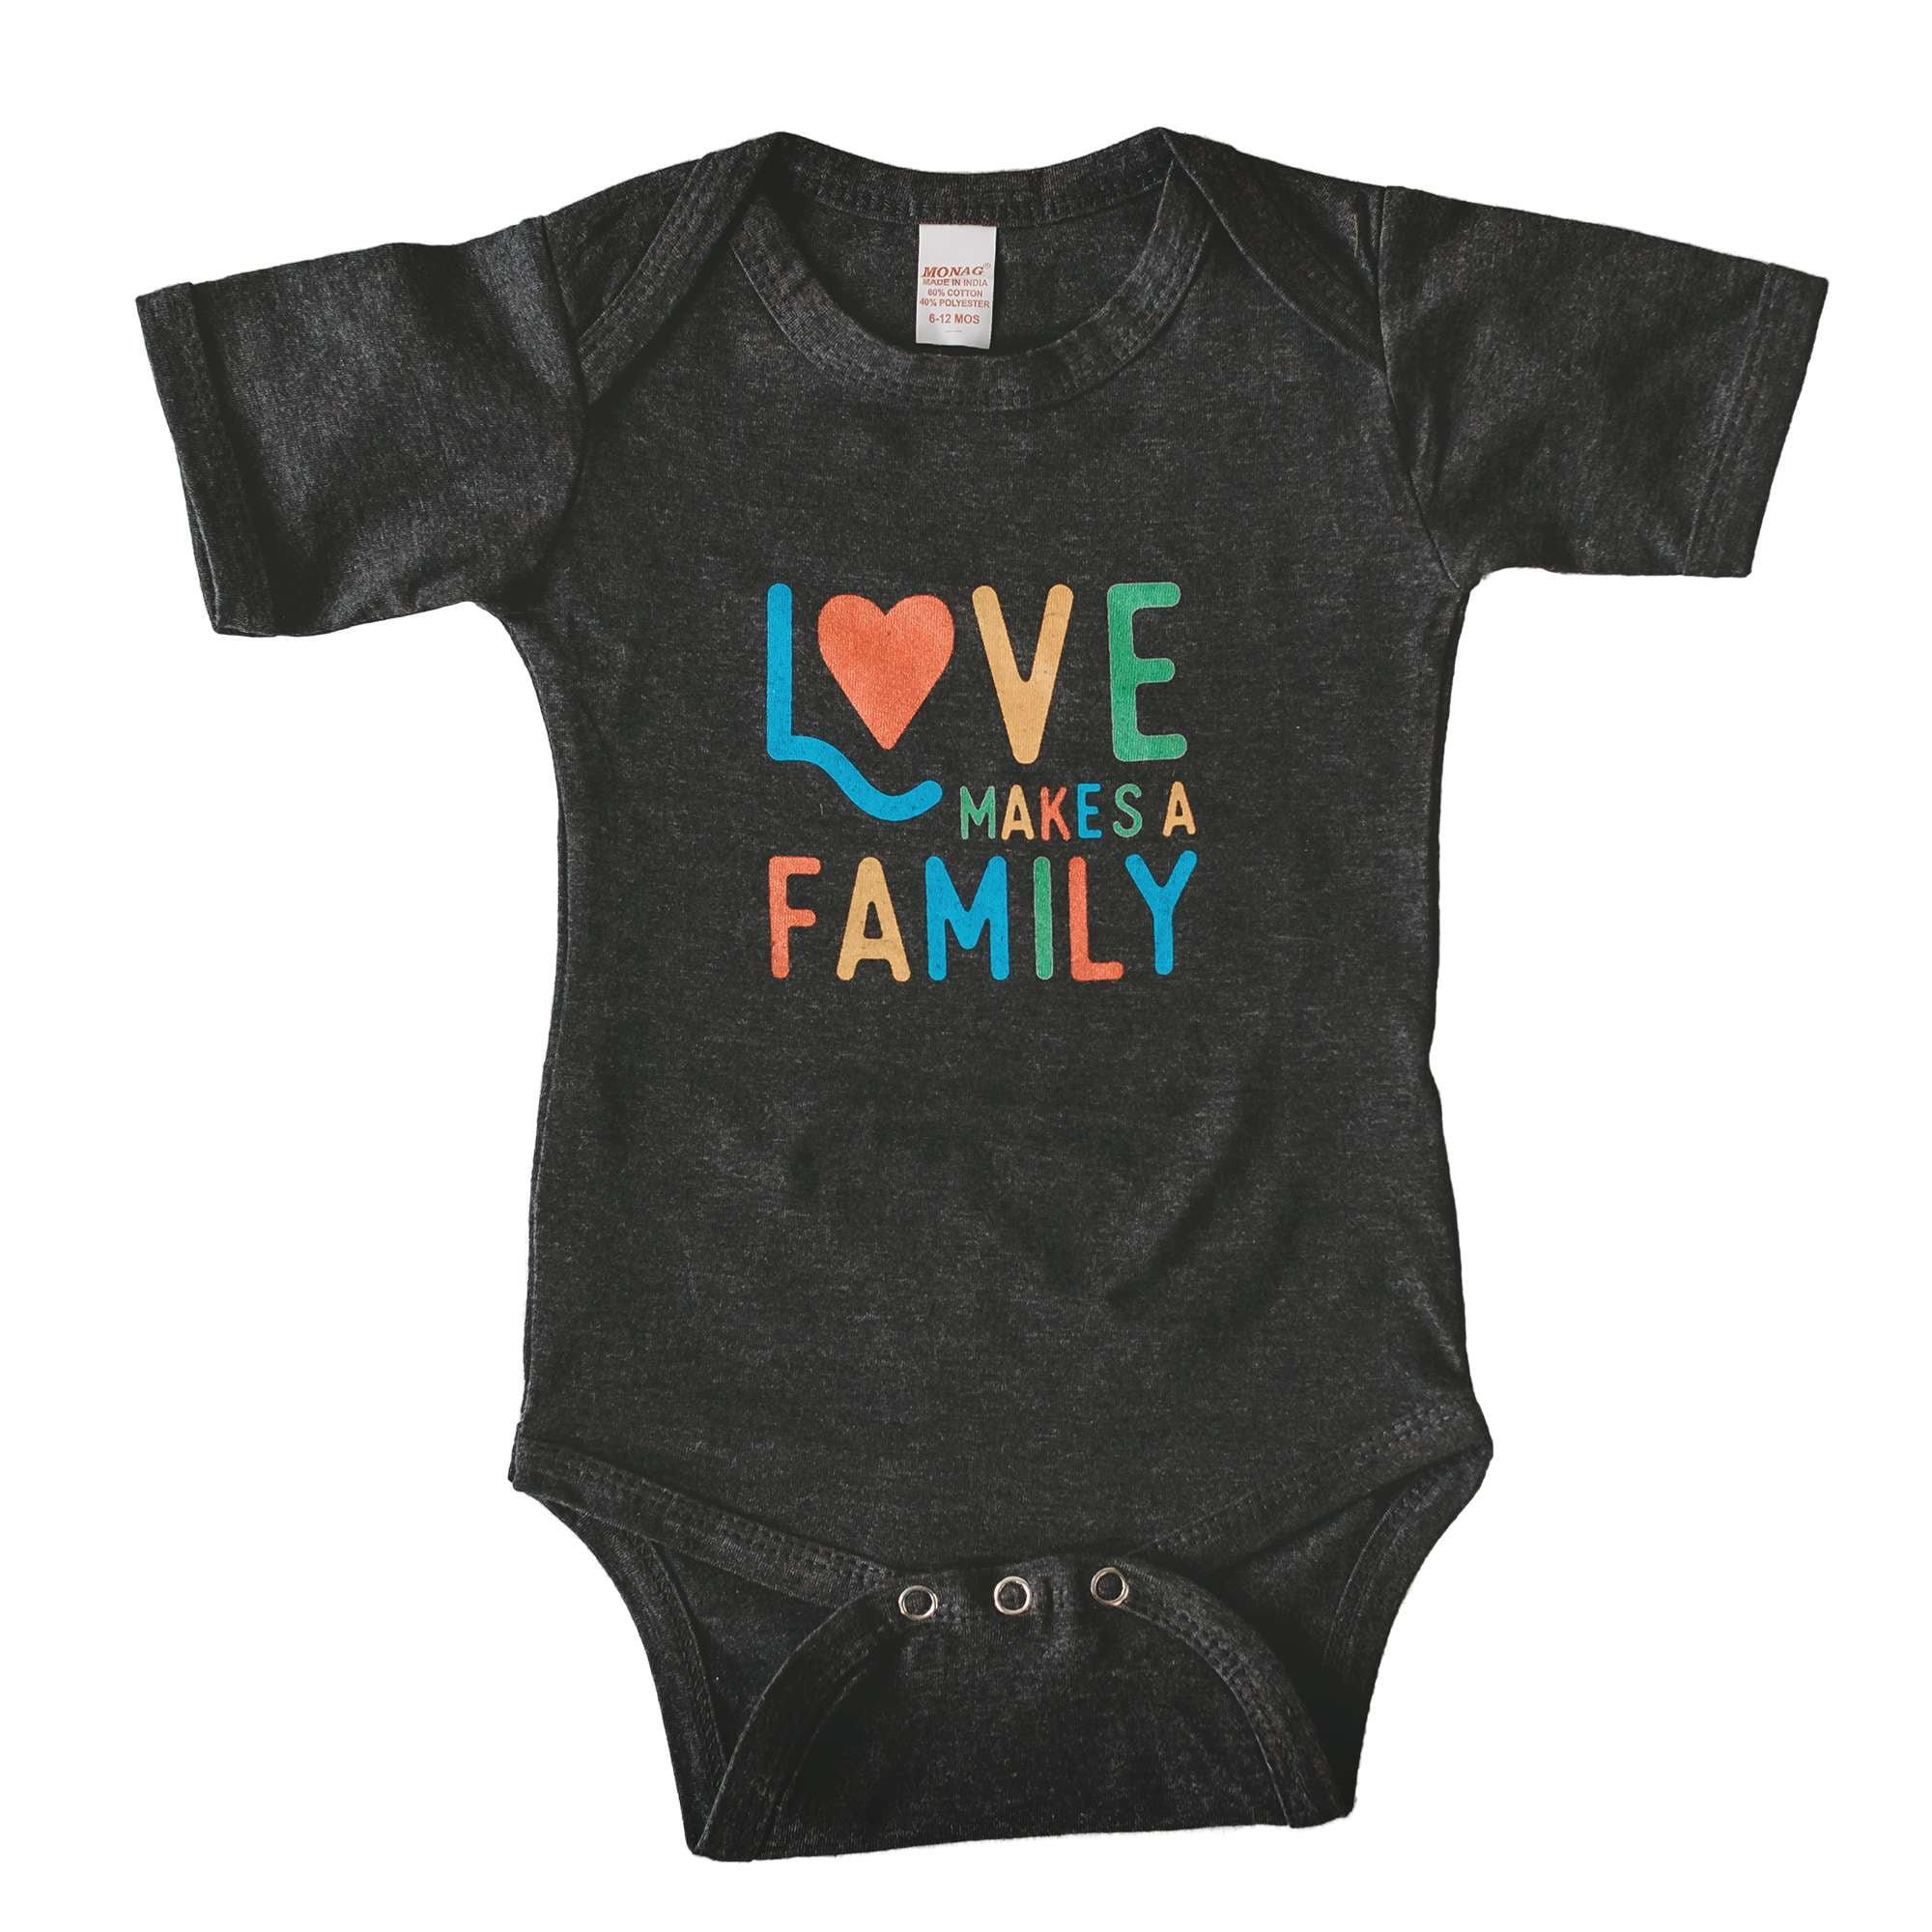 Love Makes a Family baby bodysuit / onesie